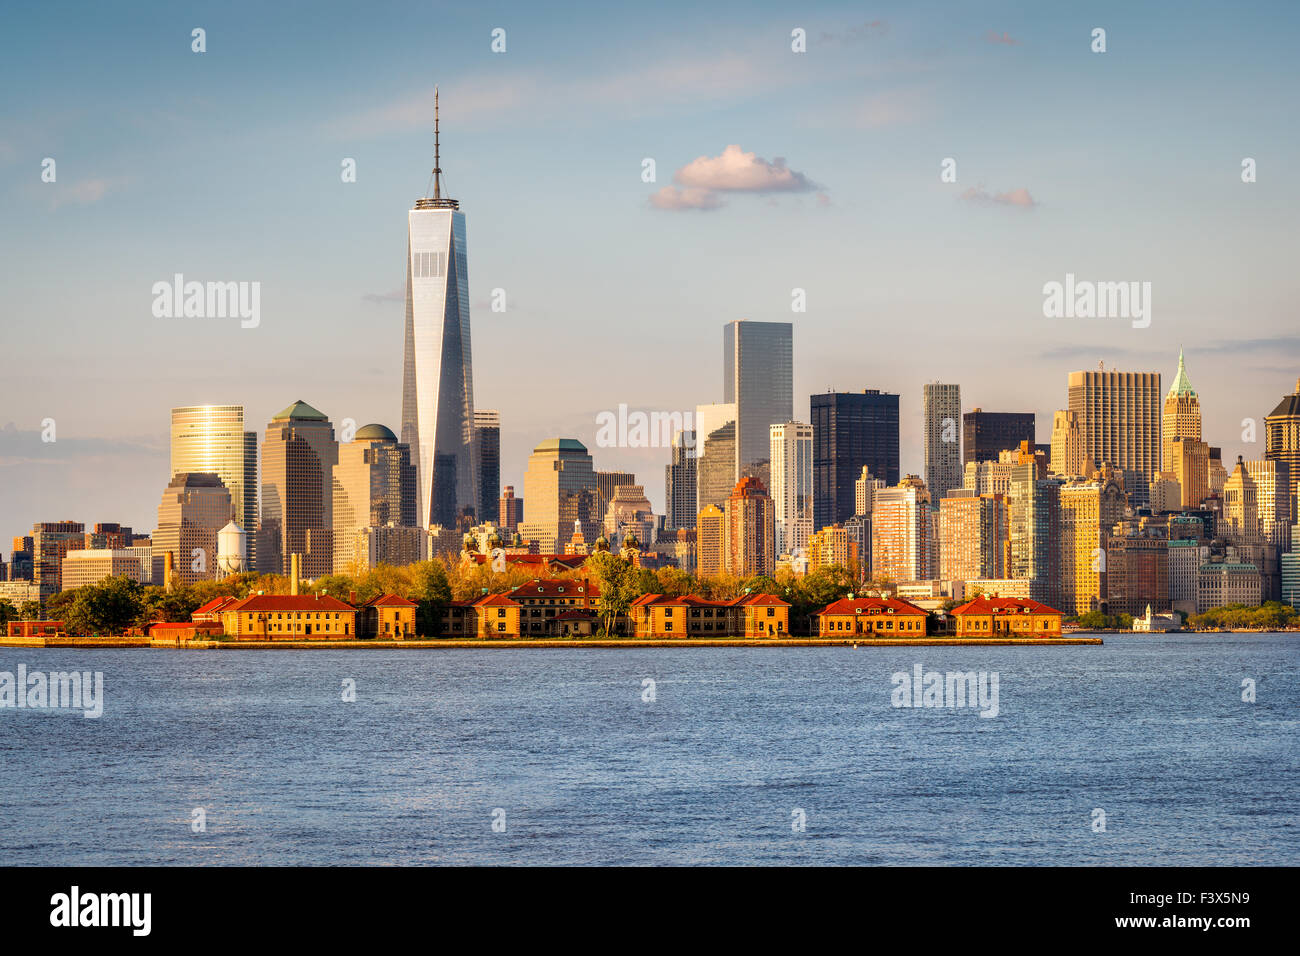 New York Harbor view of the World Trade Center and Lower Manhattan with Financial District skyscrapers and Ellis - Stock Image